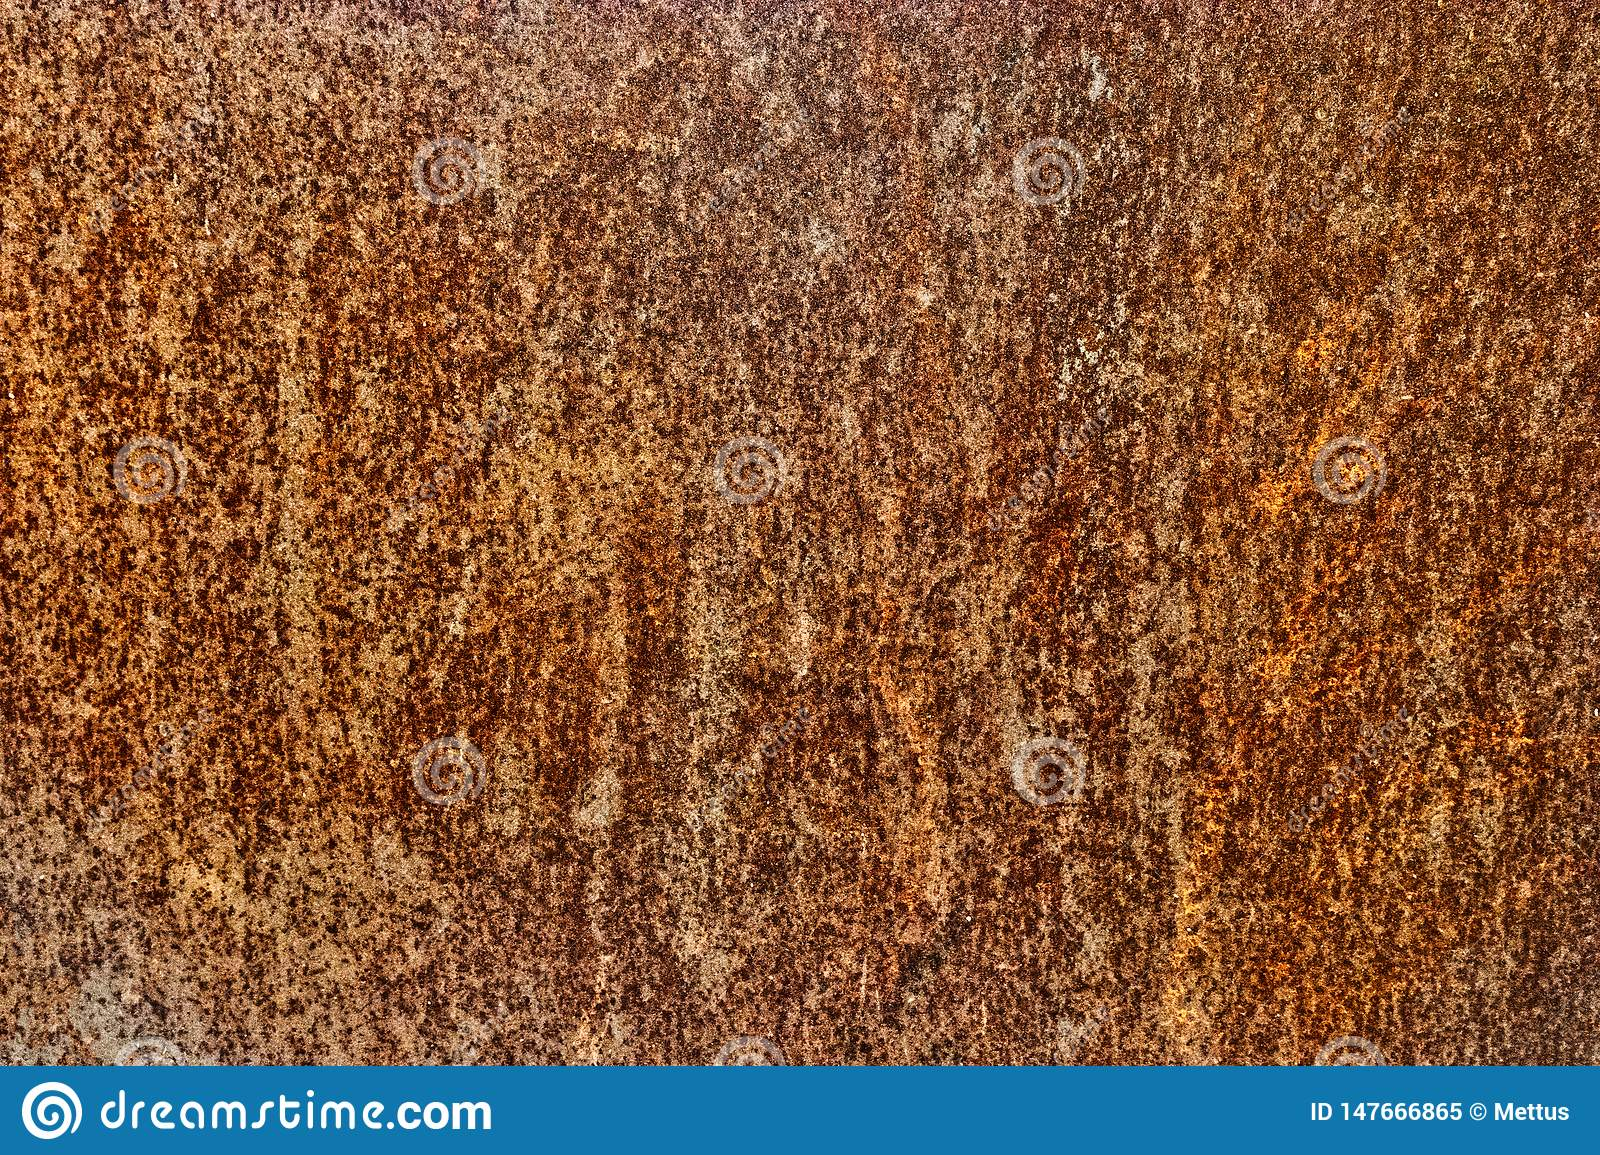 Contrast rust covering an iron sheet surface